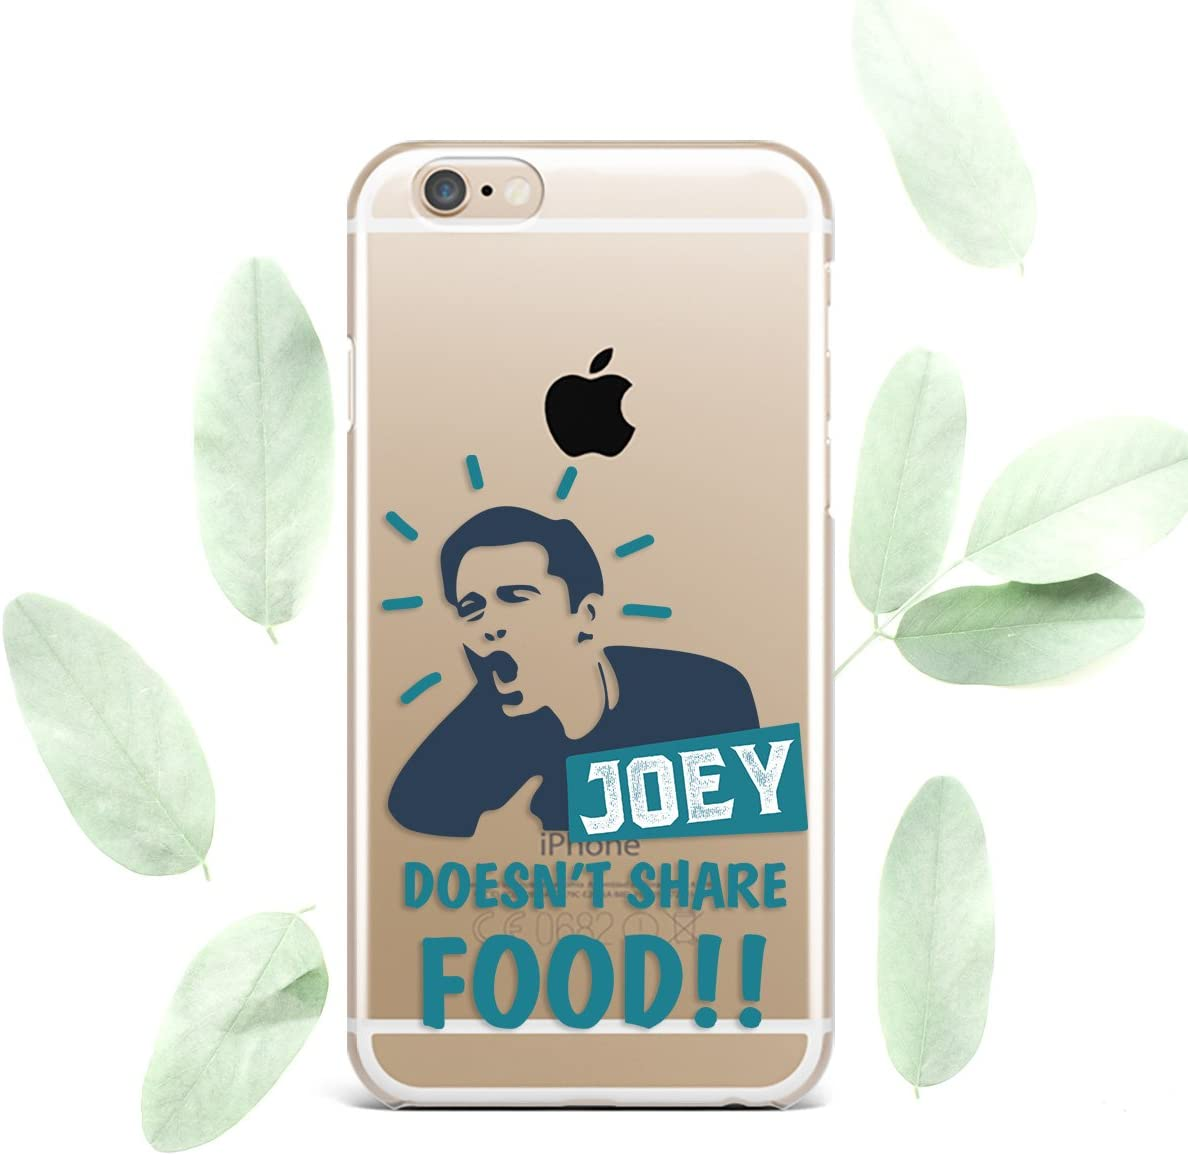 Friends TV Show Joey Doesn't Share Food Convenient Cell Phone Cover Case for Apple iPhone Art Design Silicone Durable Protective Clear Skin Cover Case Joey, for iPhone 4 / 4S